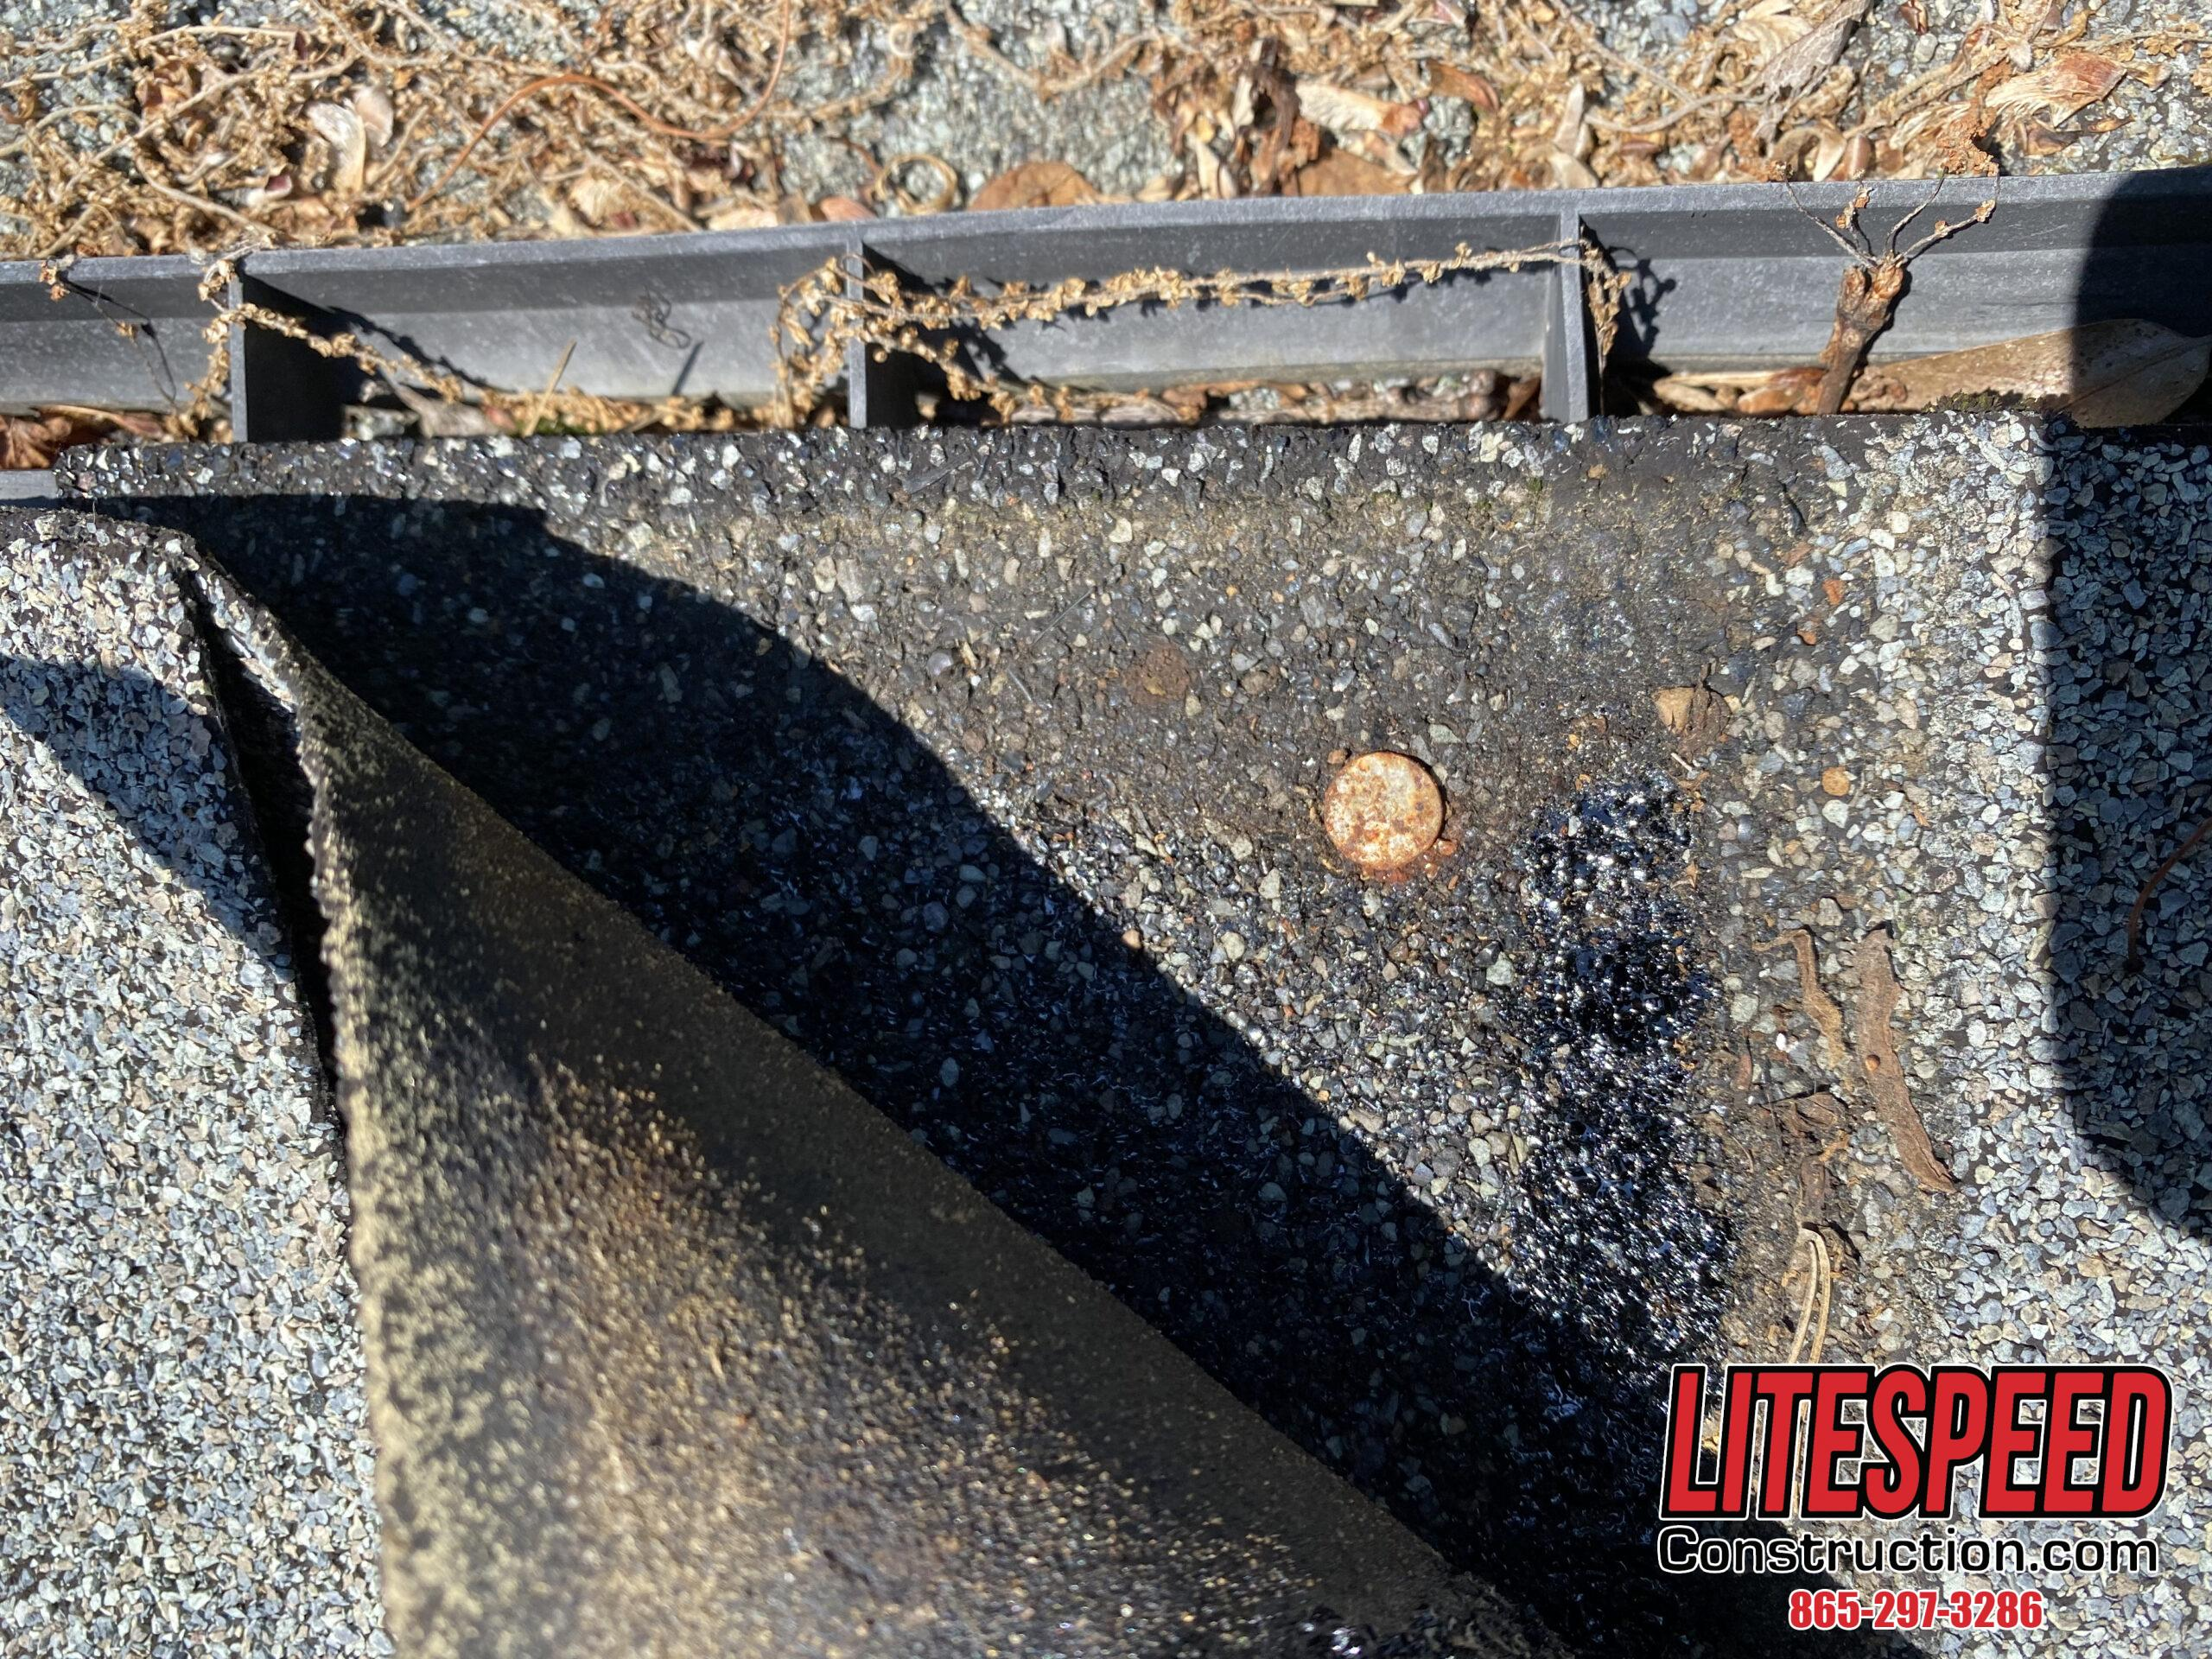 This is a picture of a rusty nail underneath a ridge cap shingle.